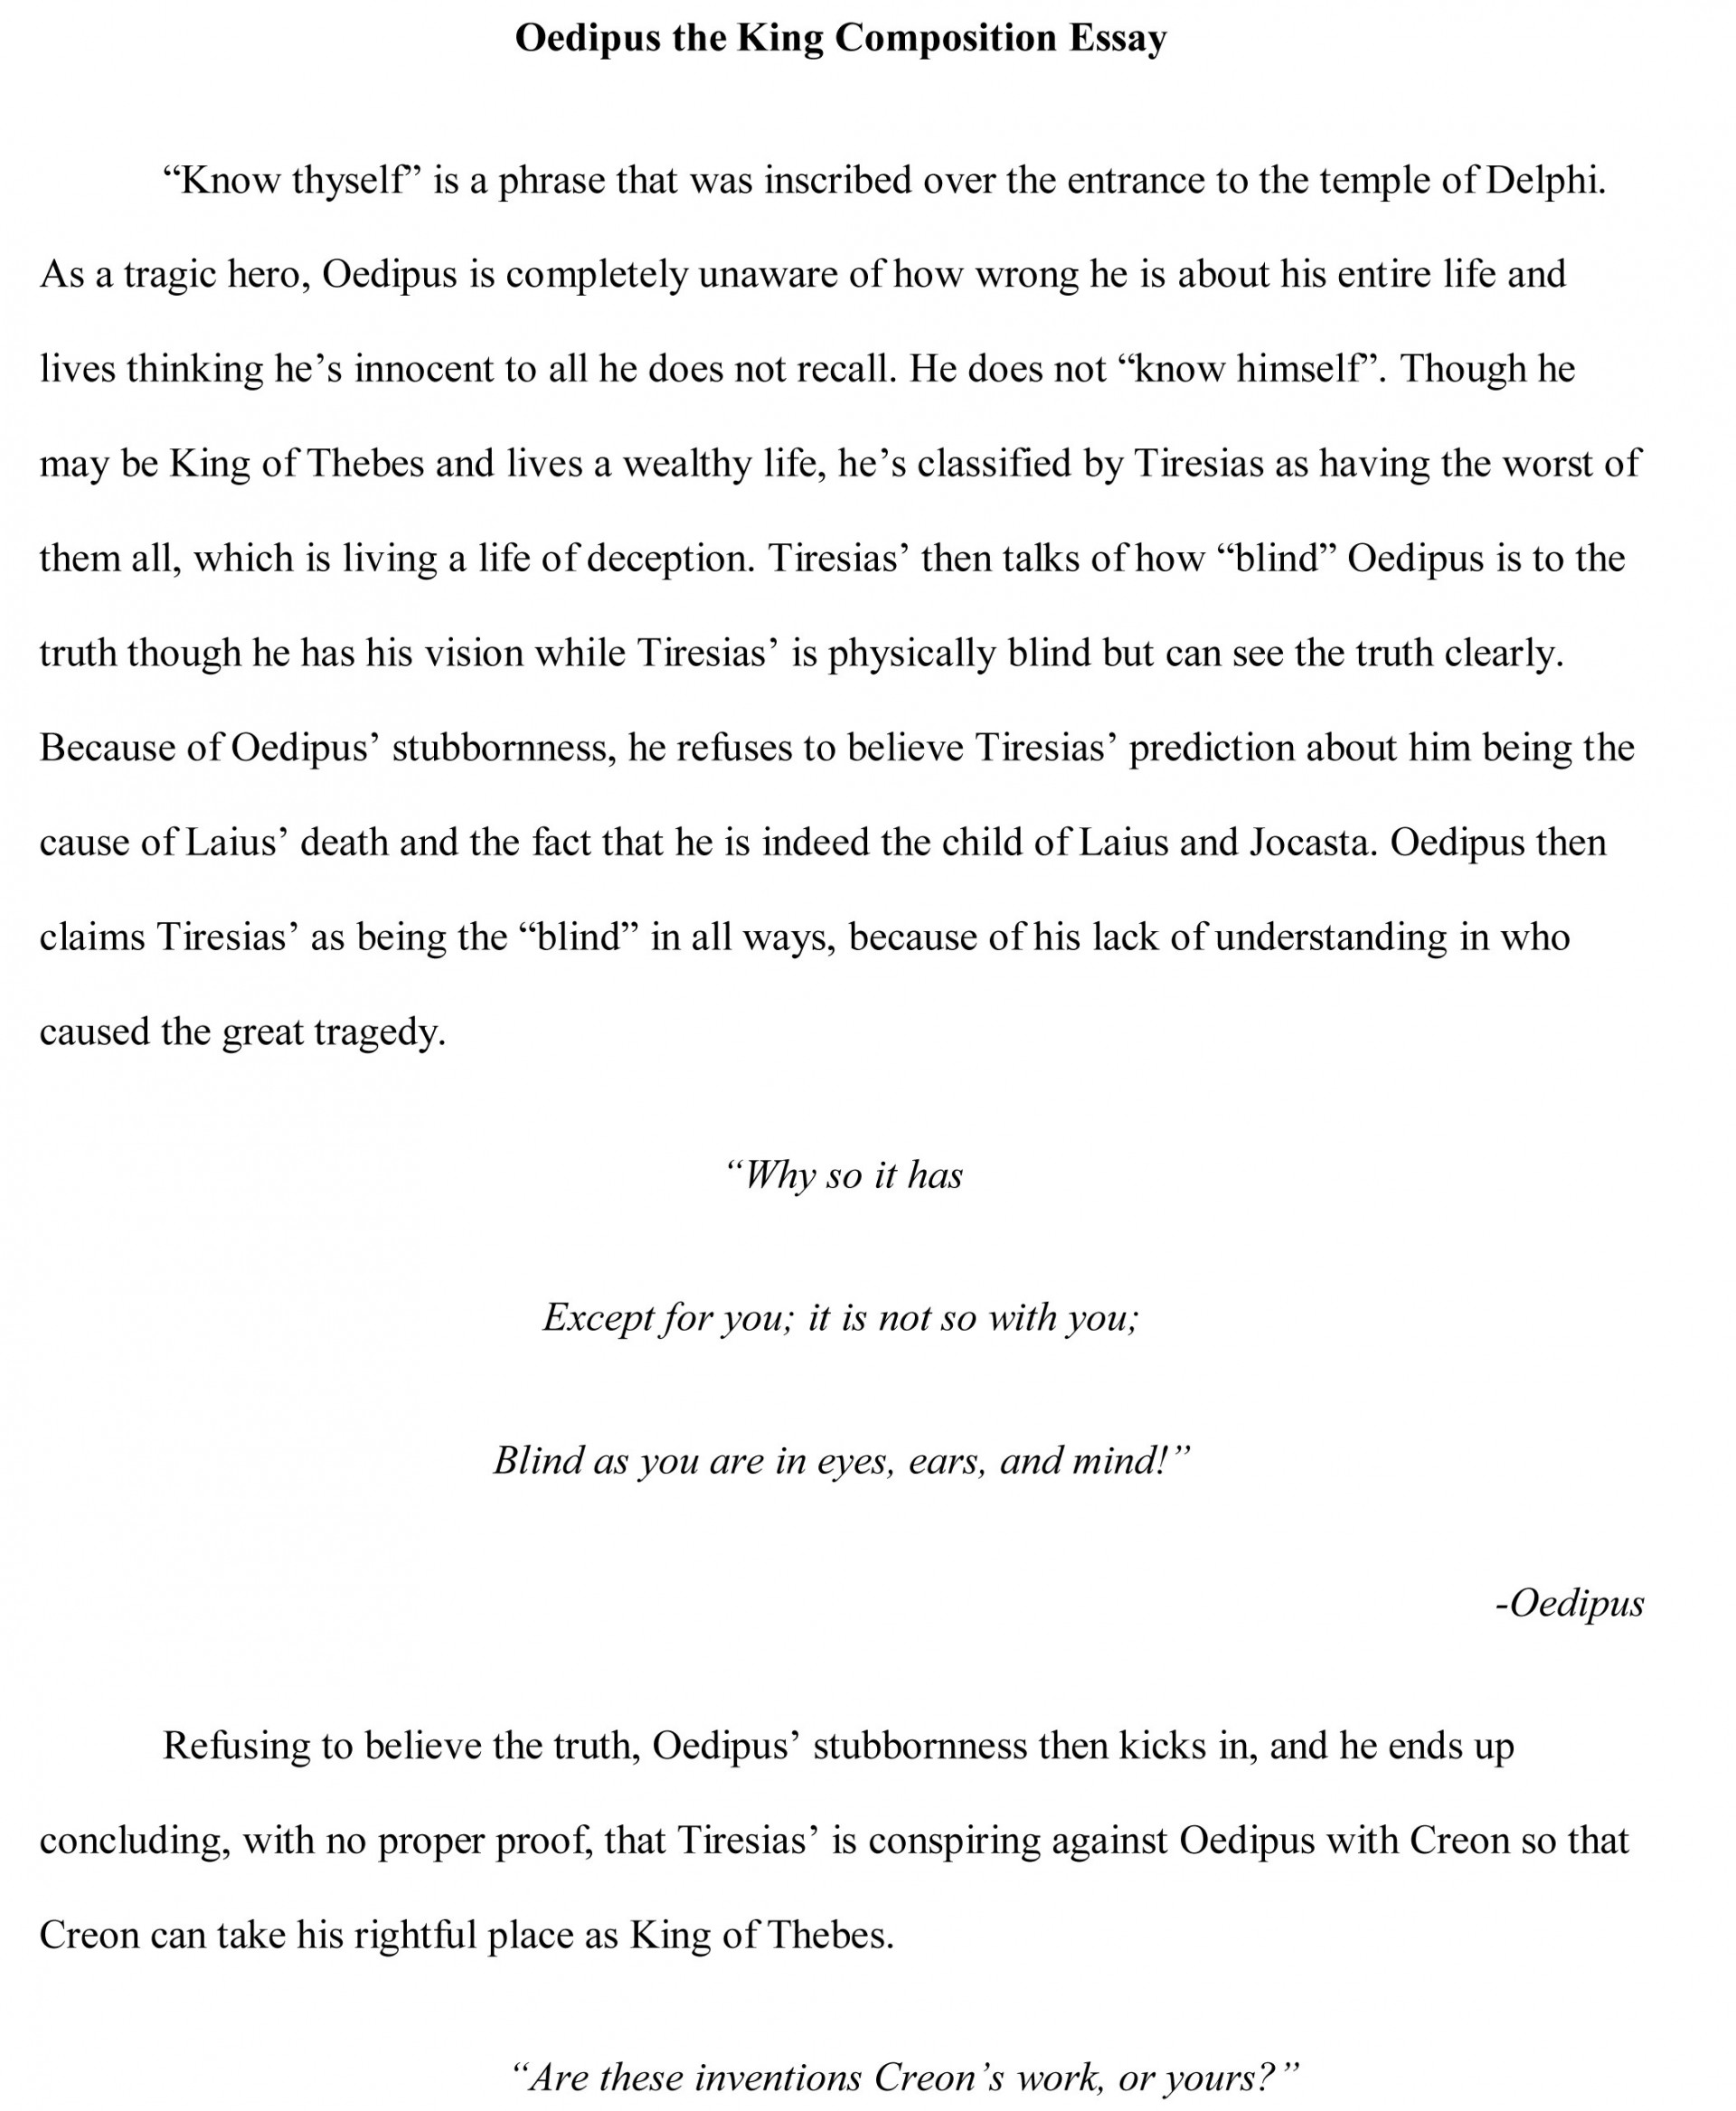 003 Oedipus Essay Free Sample Research Paper 8th Grade Science Stunning Outline 1920